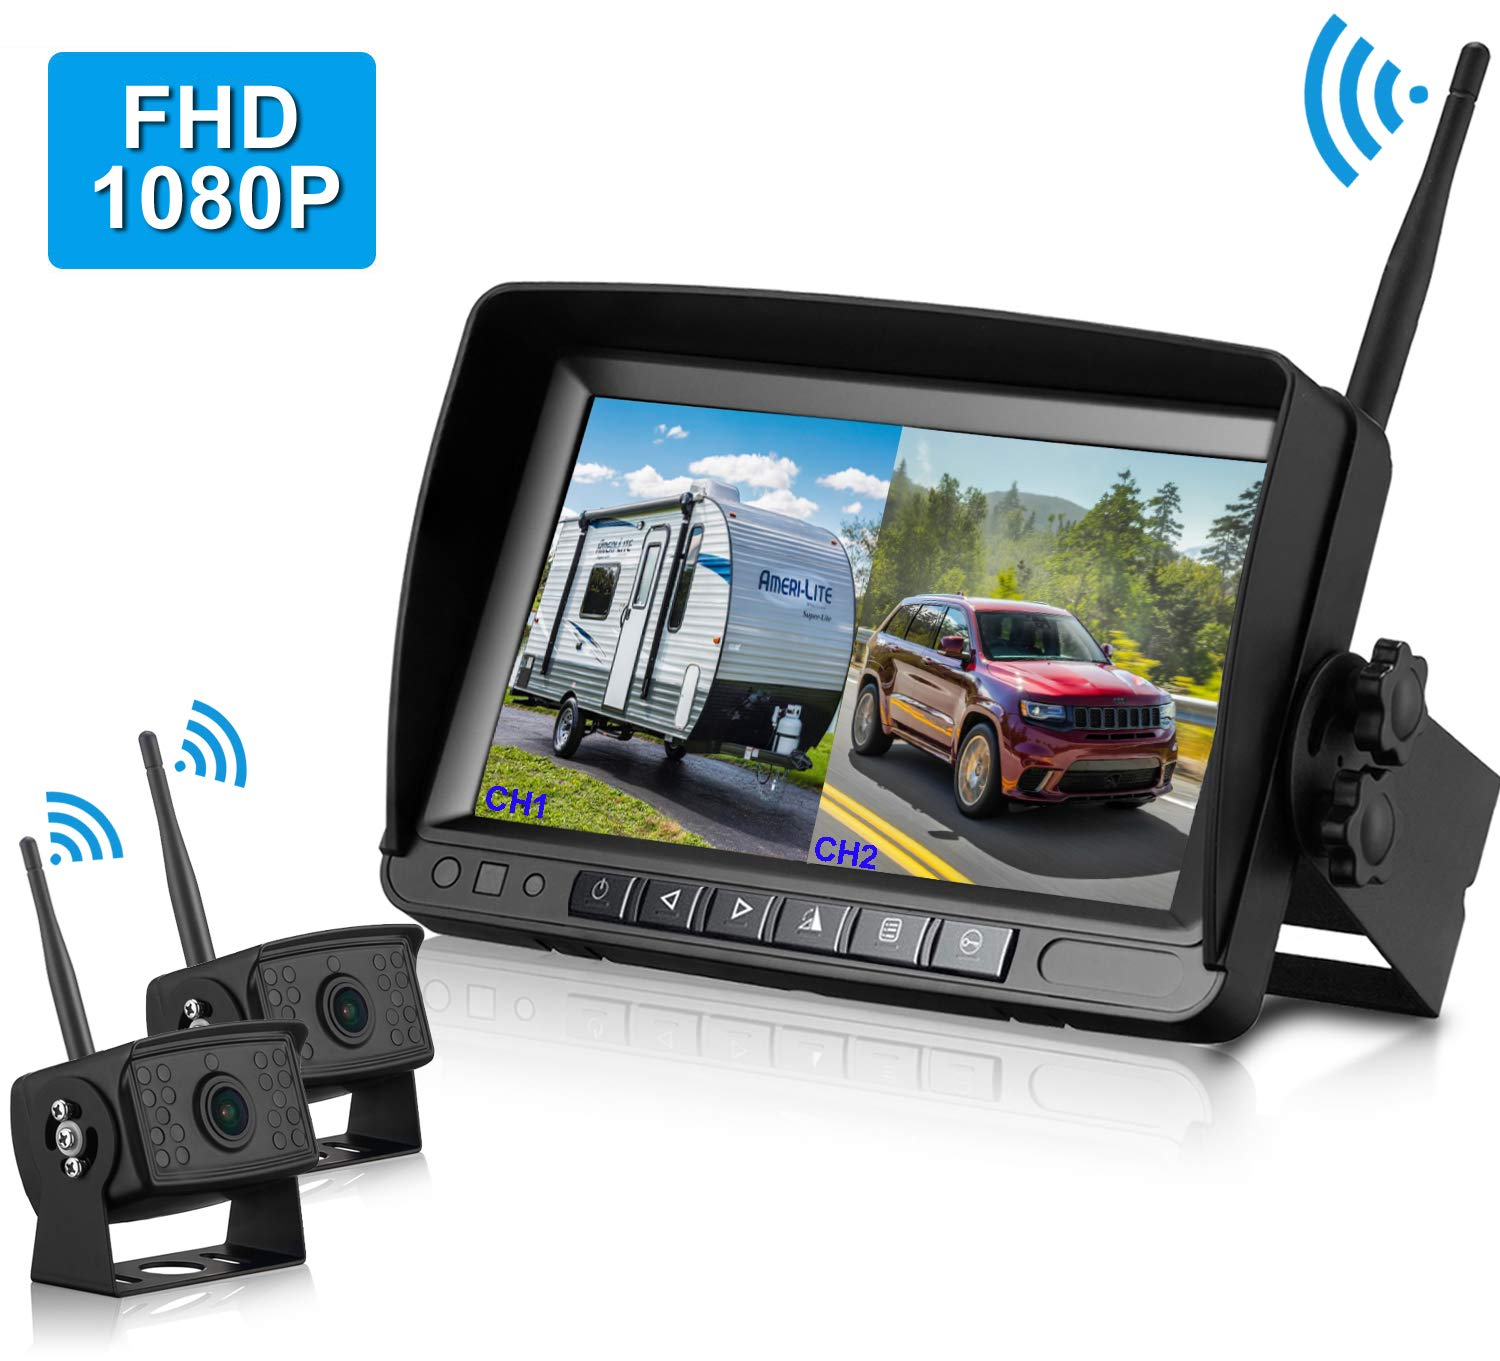 FHD 1080P Digital Wireless Dual Backup Camera 7'' Monitor Kit Split Screen for Trailer/RV/Truck/Camper Rear/Side/Front View Camera Night Vision IP69K Waterproof Driving/Reversing Use by DoHonest